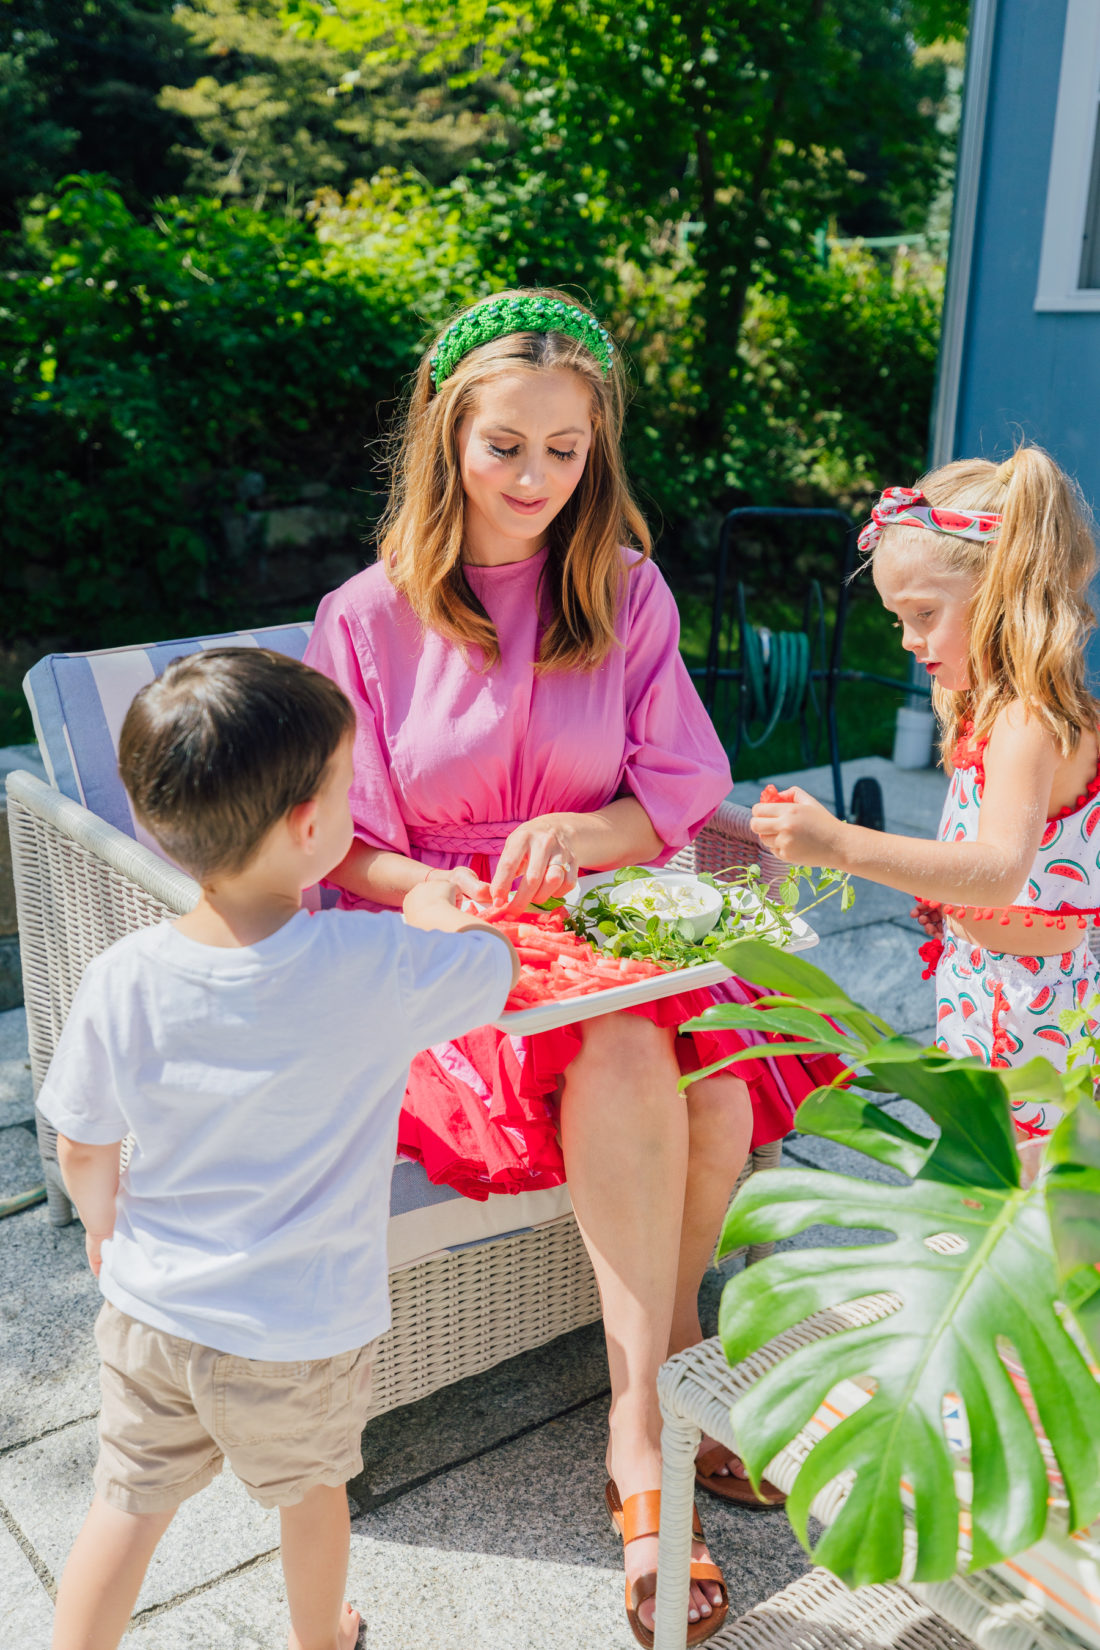 Eva Amurri Martino serves some watermelon fries to her son Major and daughter Marlowe